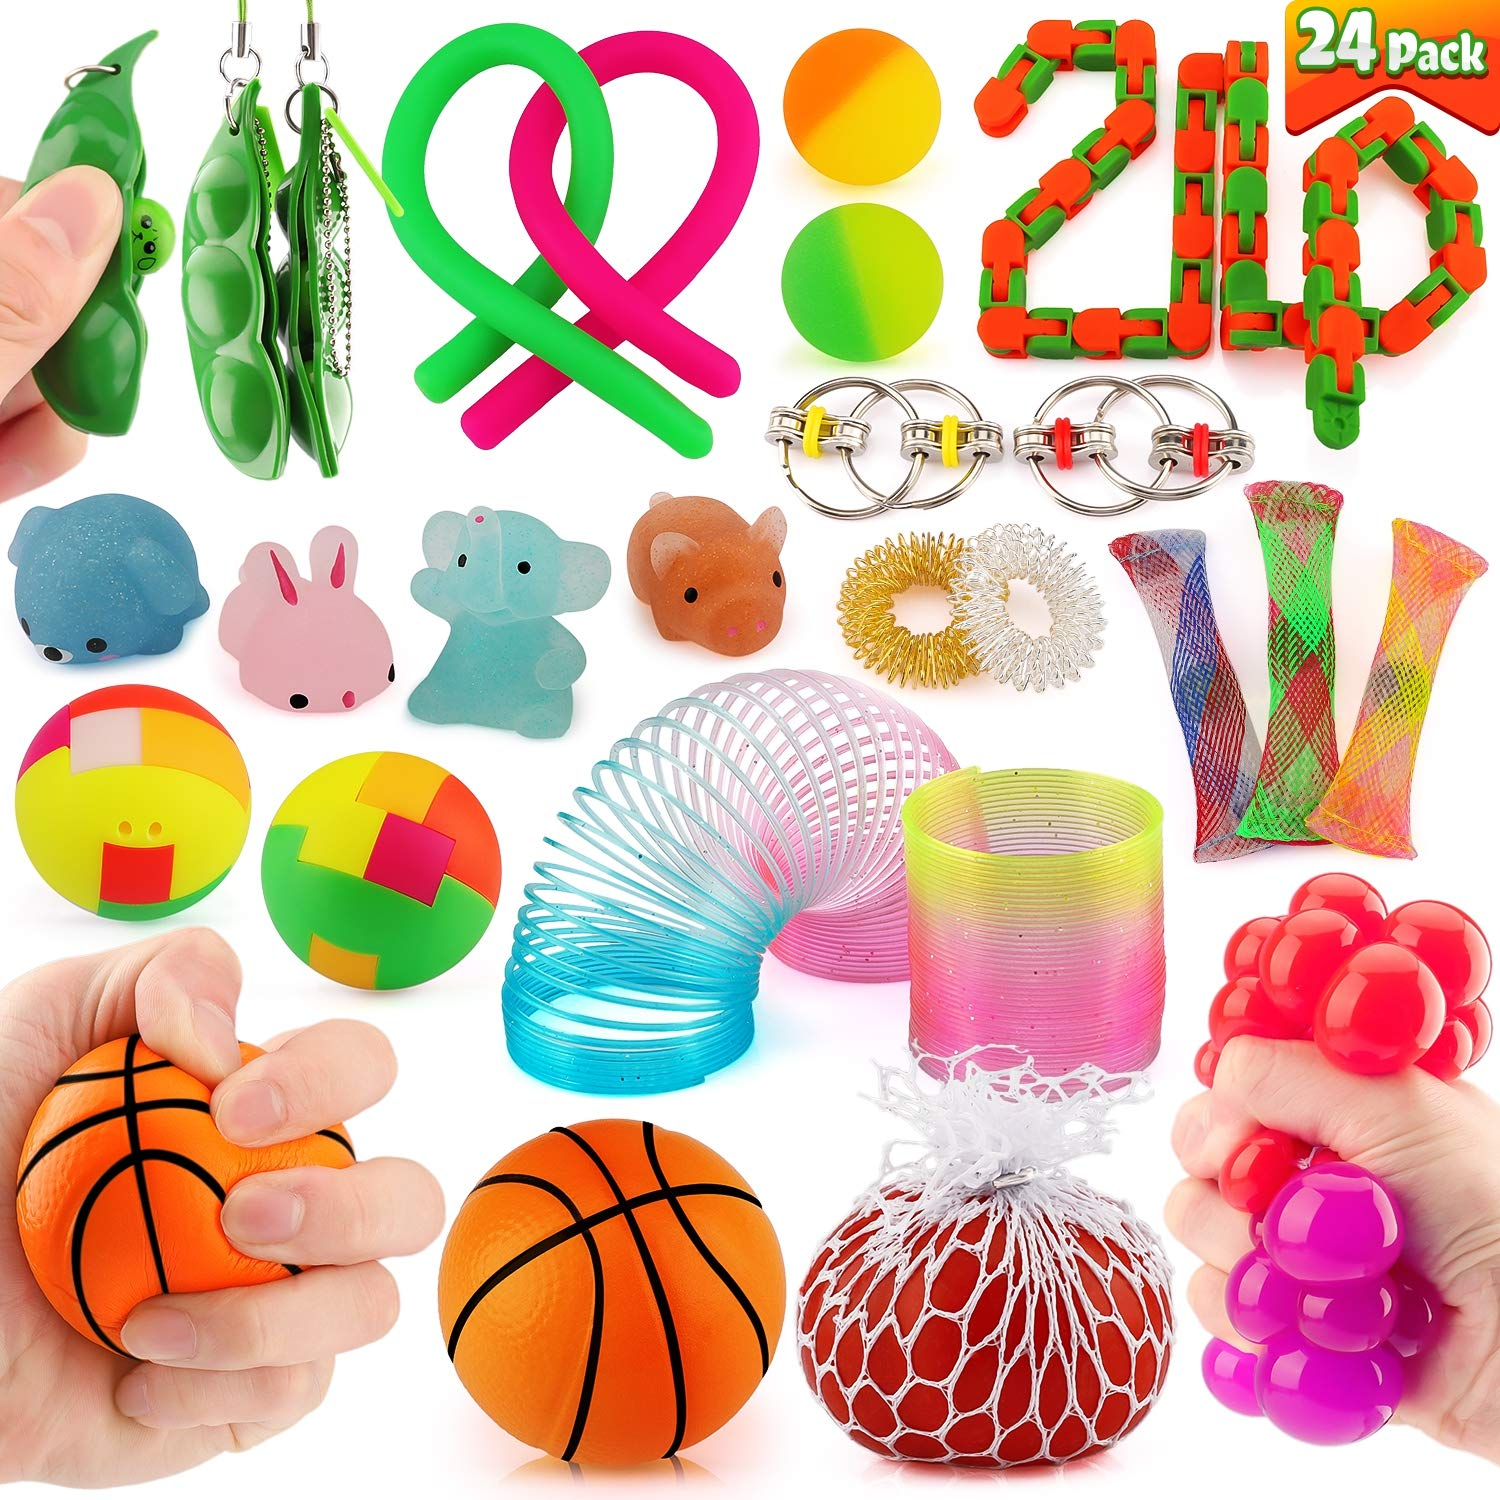 24 Pack Sensory Toy Fidget Stress Relief Toy for Adults and Kids Perfect for ADHD, Anxiety, and Autism